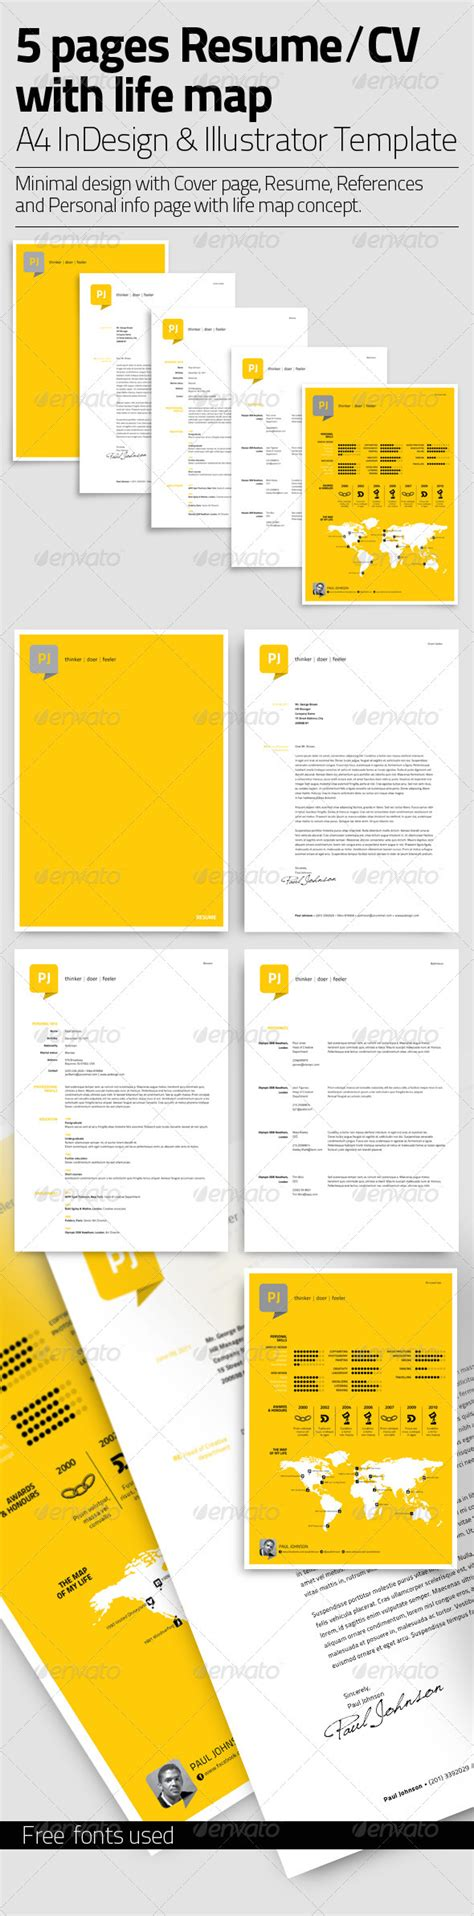 plos one word template map template images template design ideas